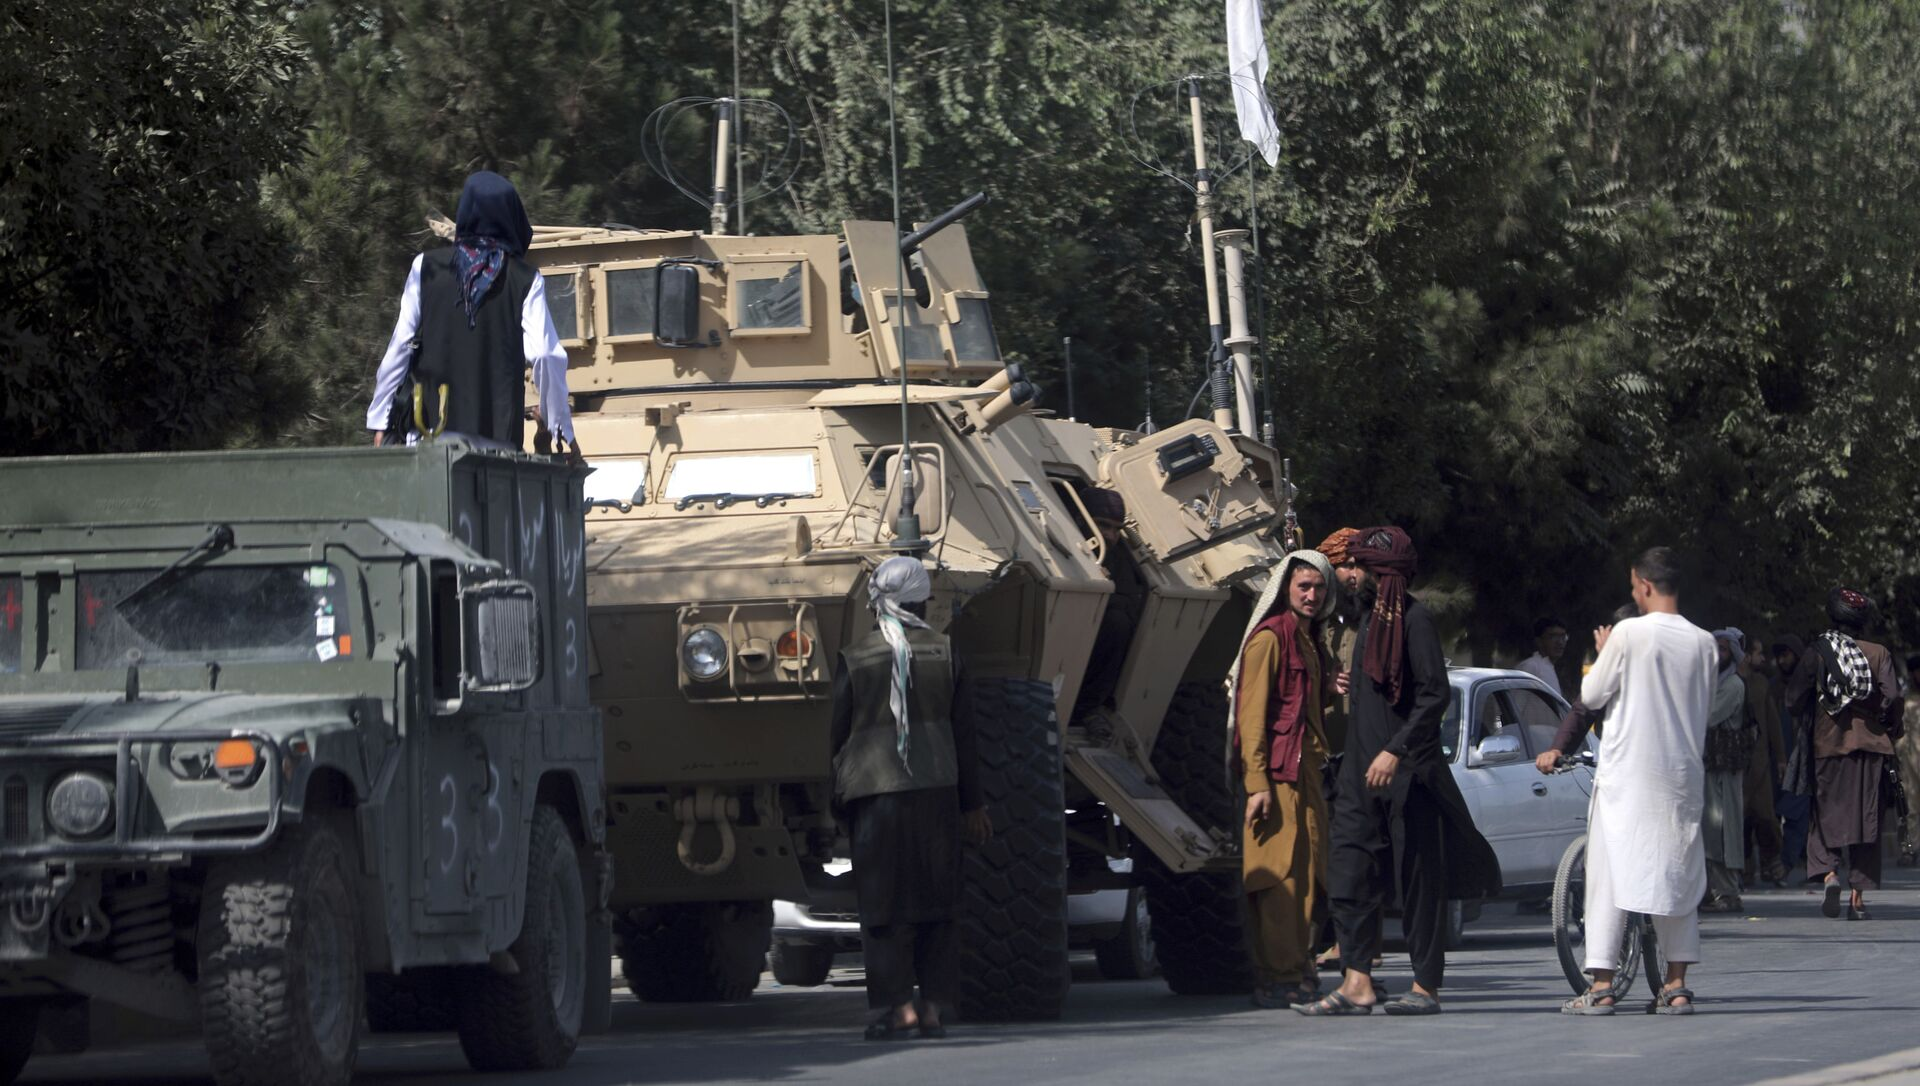 Taliban fighters stand guard on the road to the Hamid Karzai International Airport, in Kabul, Afghanistan, Monday, Aug. 16, 2021 - Sputnik International, 1920, 19.08.2021